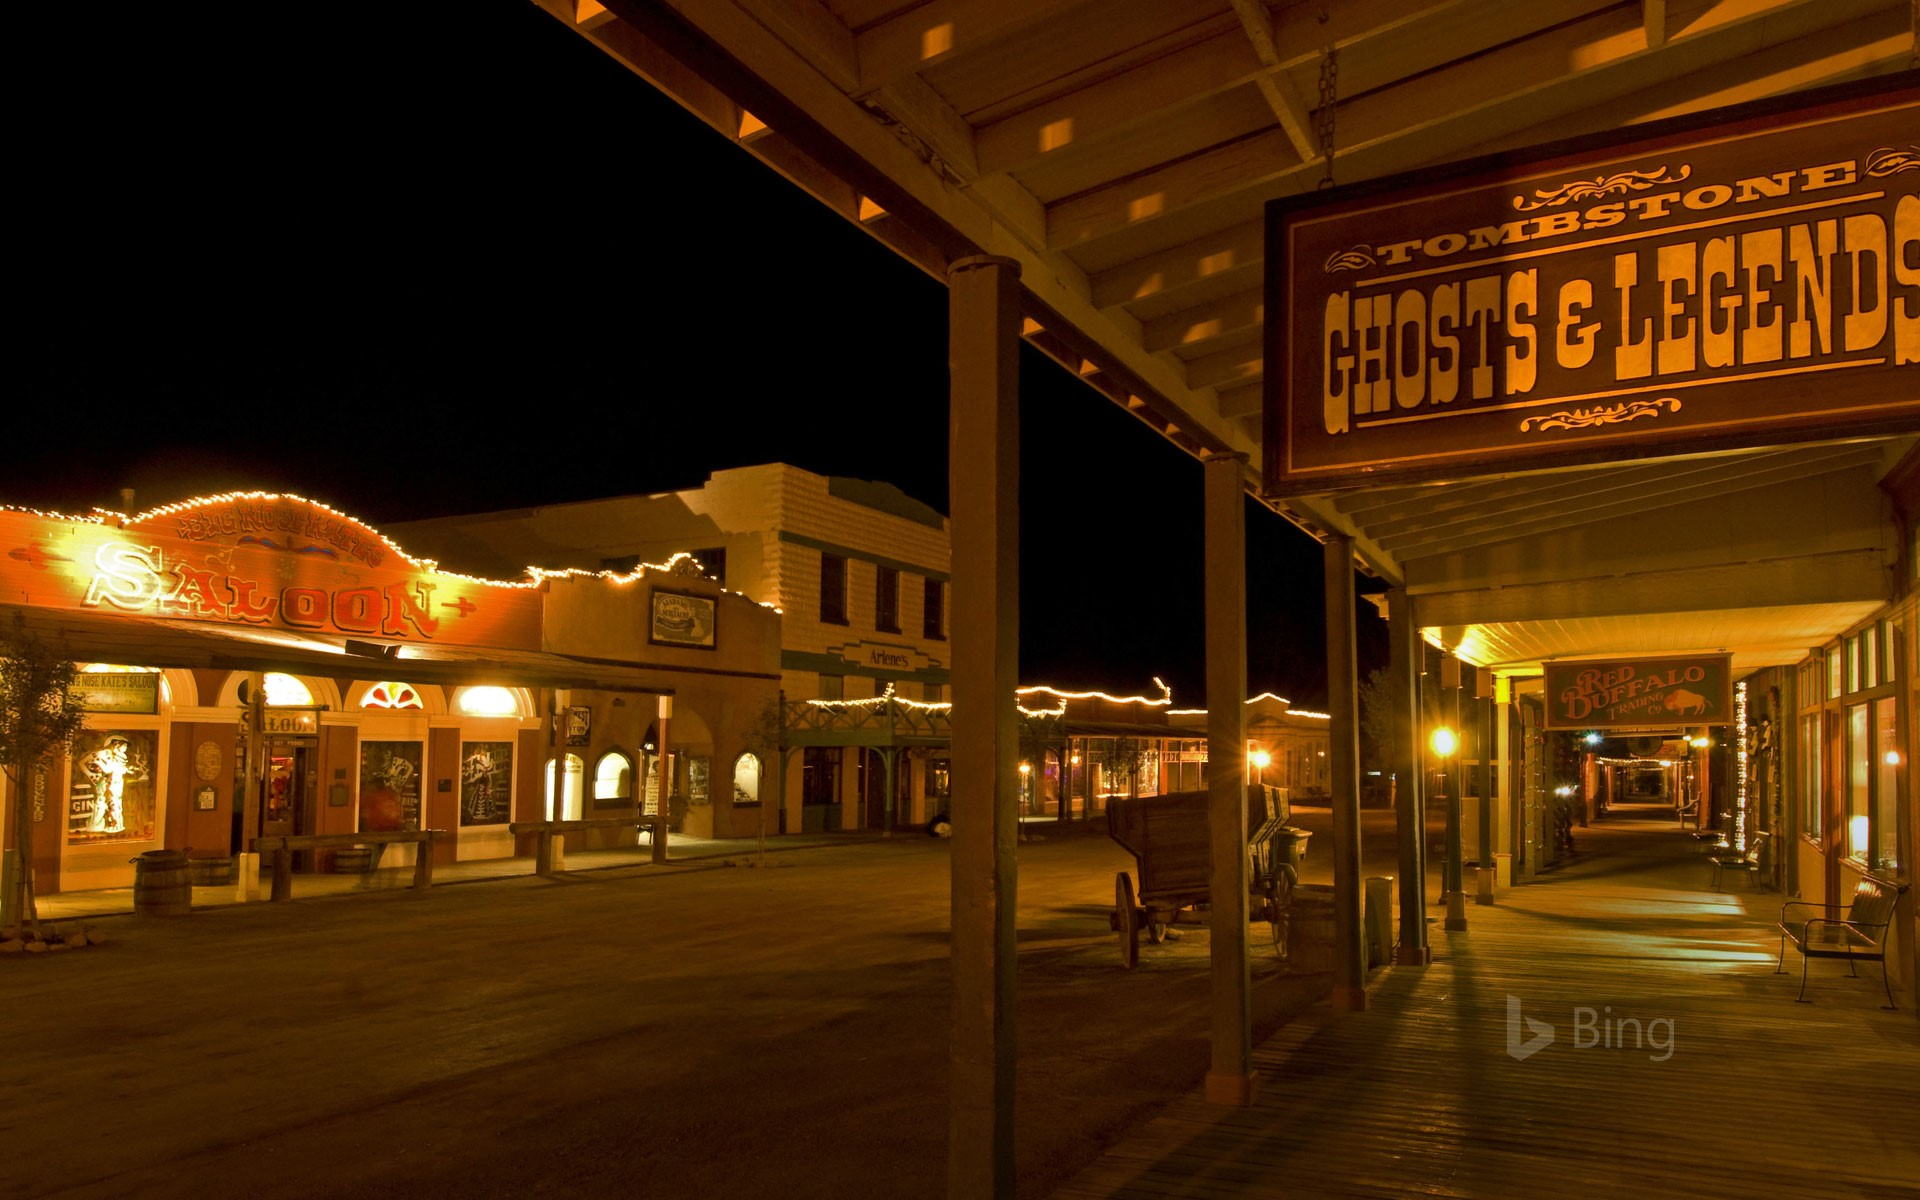 Tombstone, Arizona, on the anniversary of the gunfight at the O.K. Corral